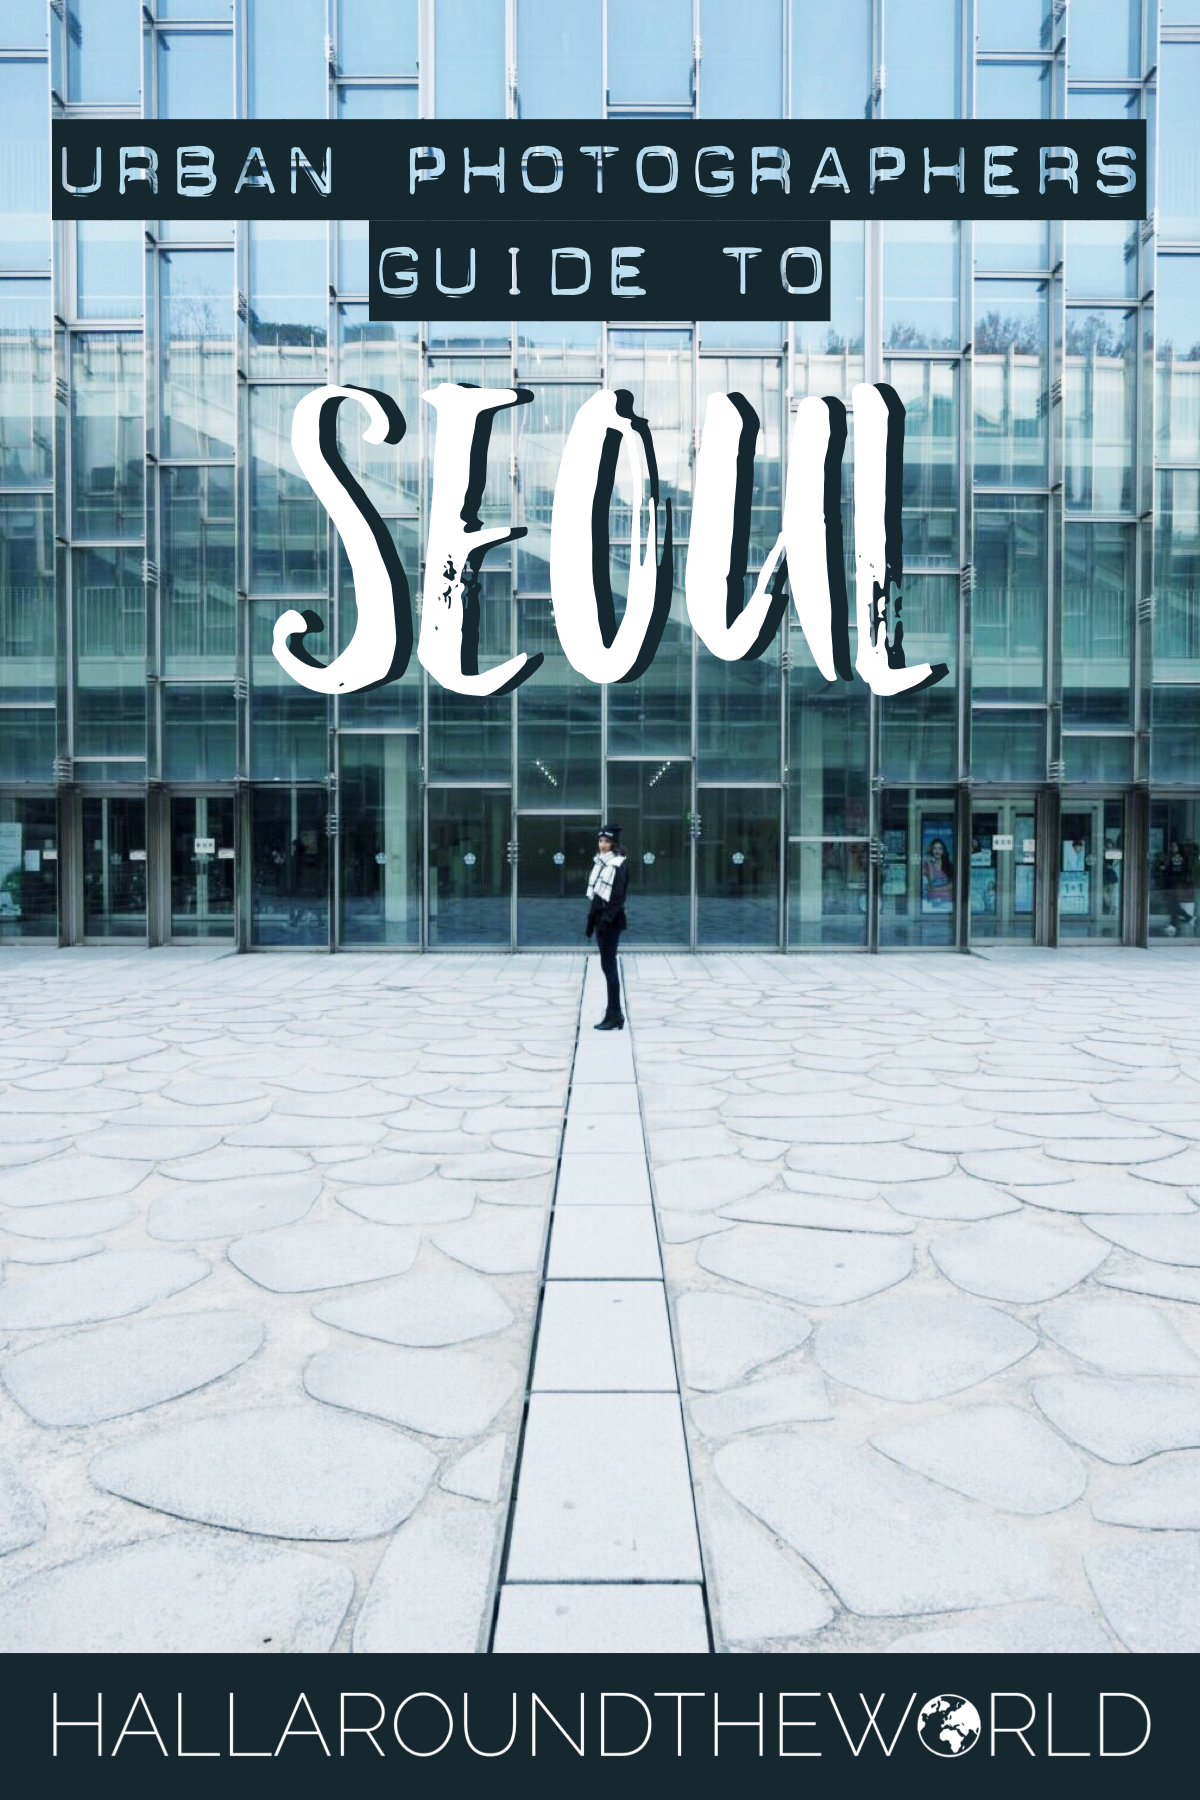 Urban Photographers Guide to Seoul - HallAroundtheWorld